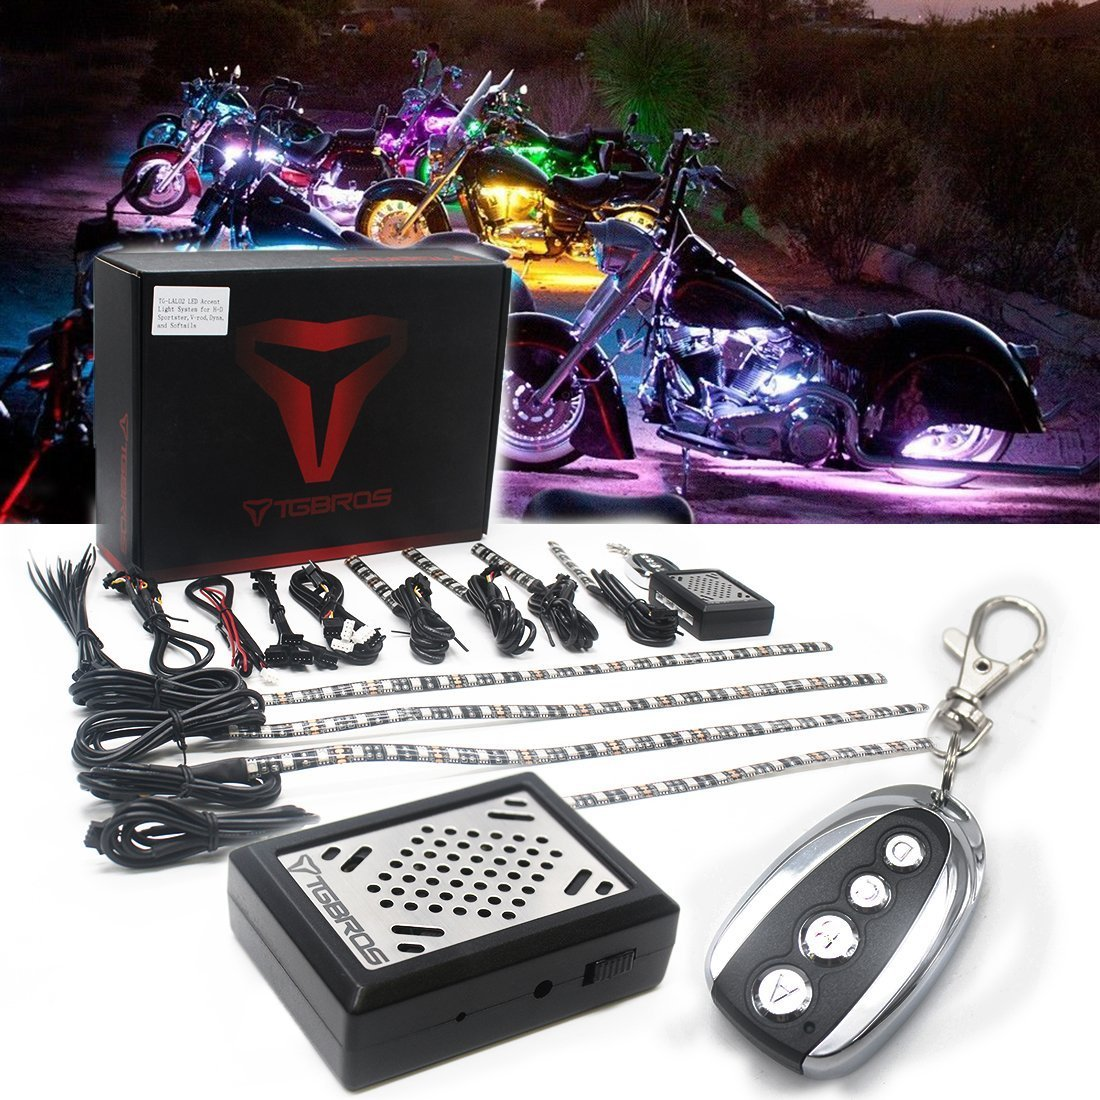 BBUT 8PCS Muti-Colour Sound Activated Flash Motorcycle LED Accent Light Kit Under Glow RGB 5050 Strips For All Motorcycle, ATV, Boats TG-LAL02